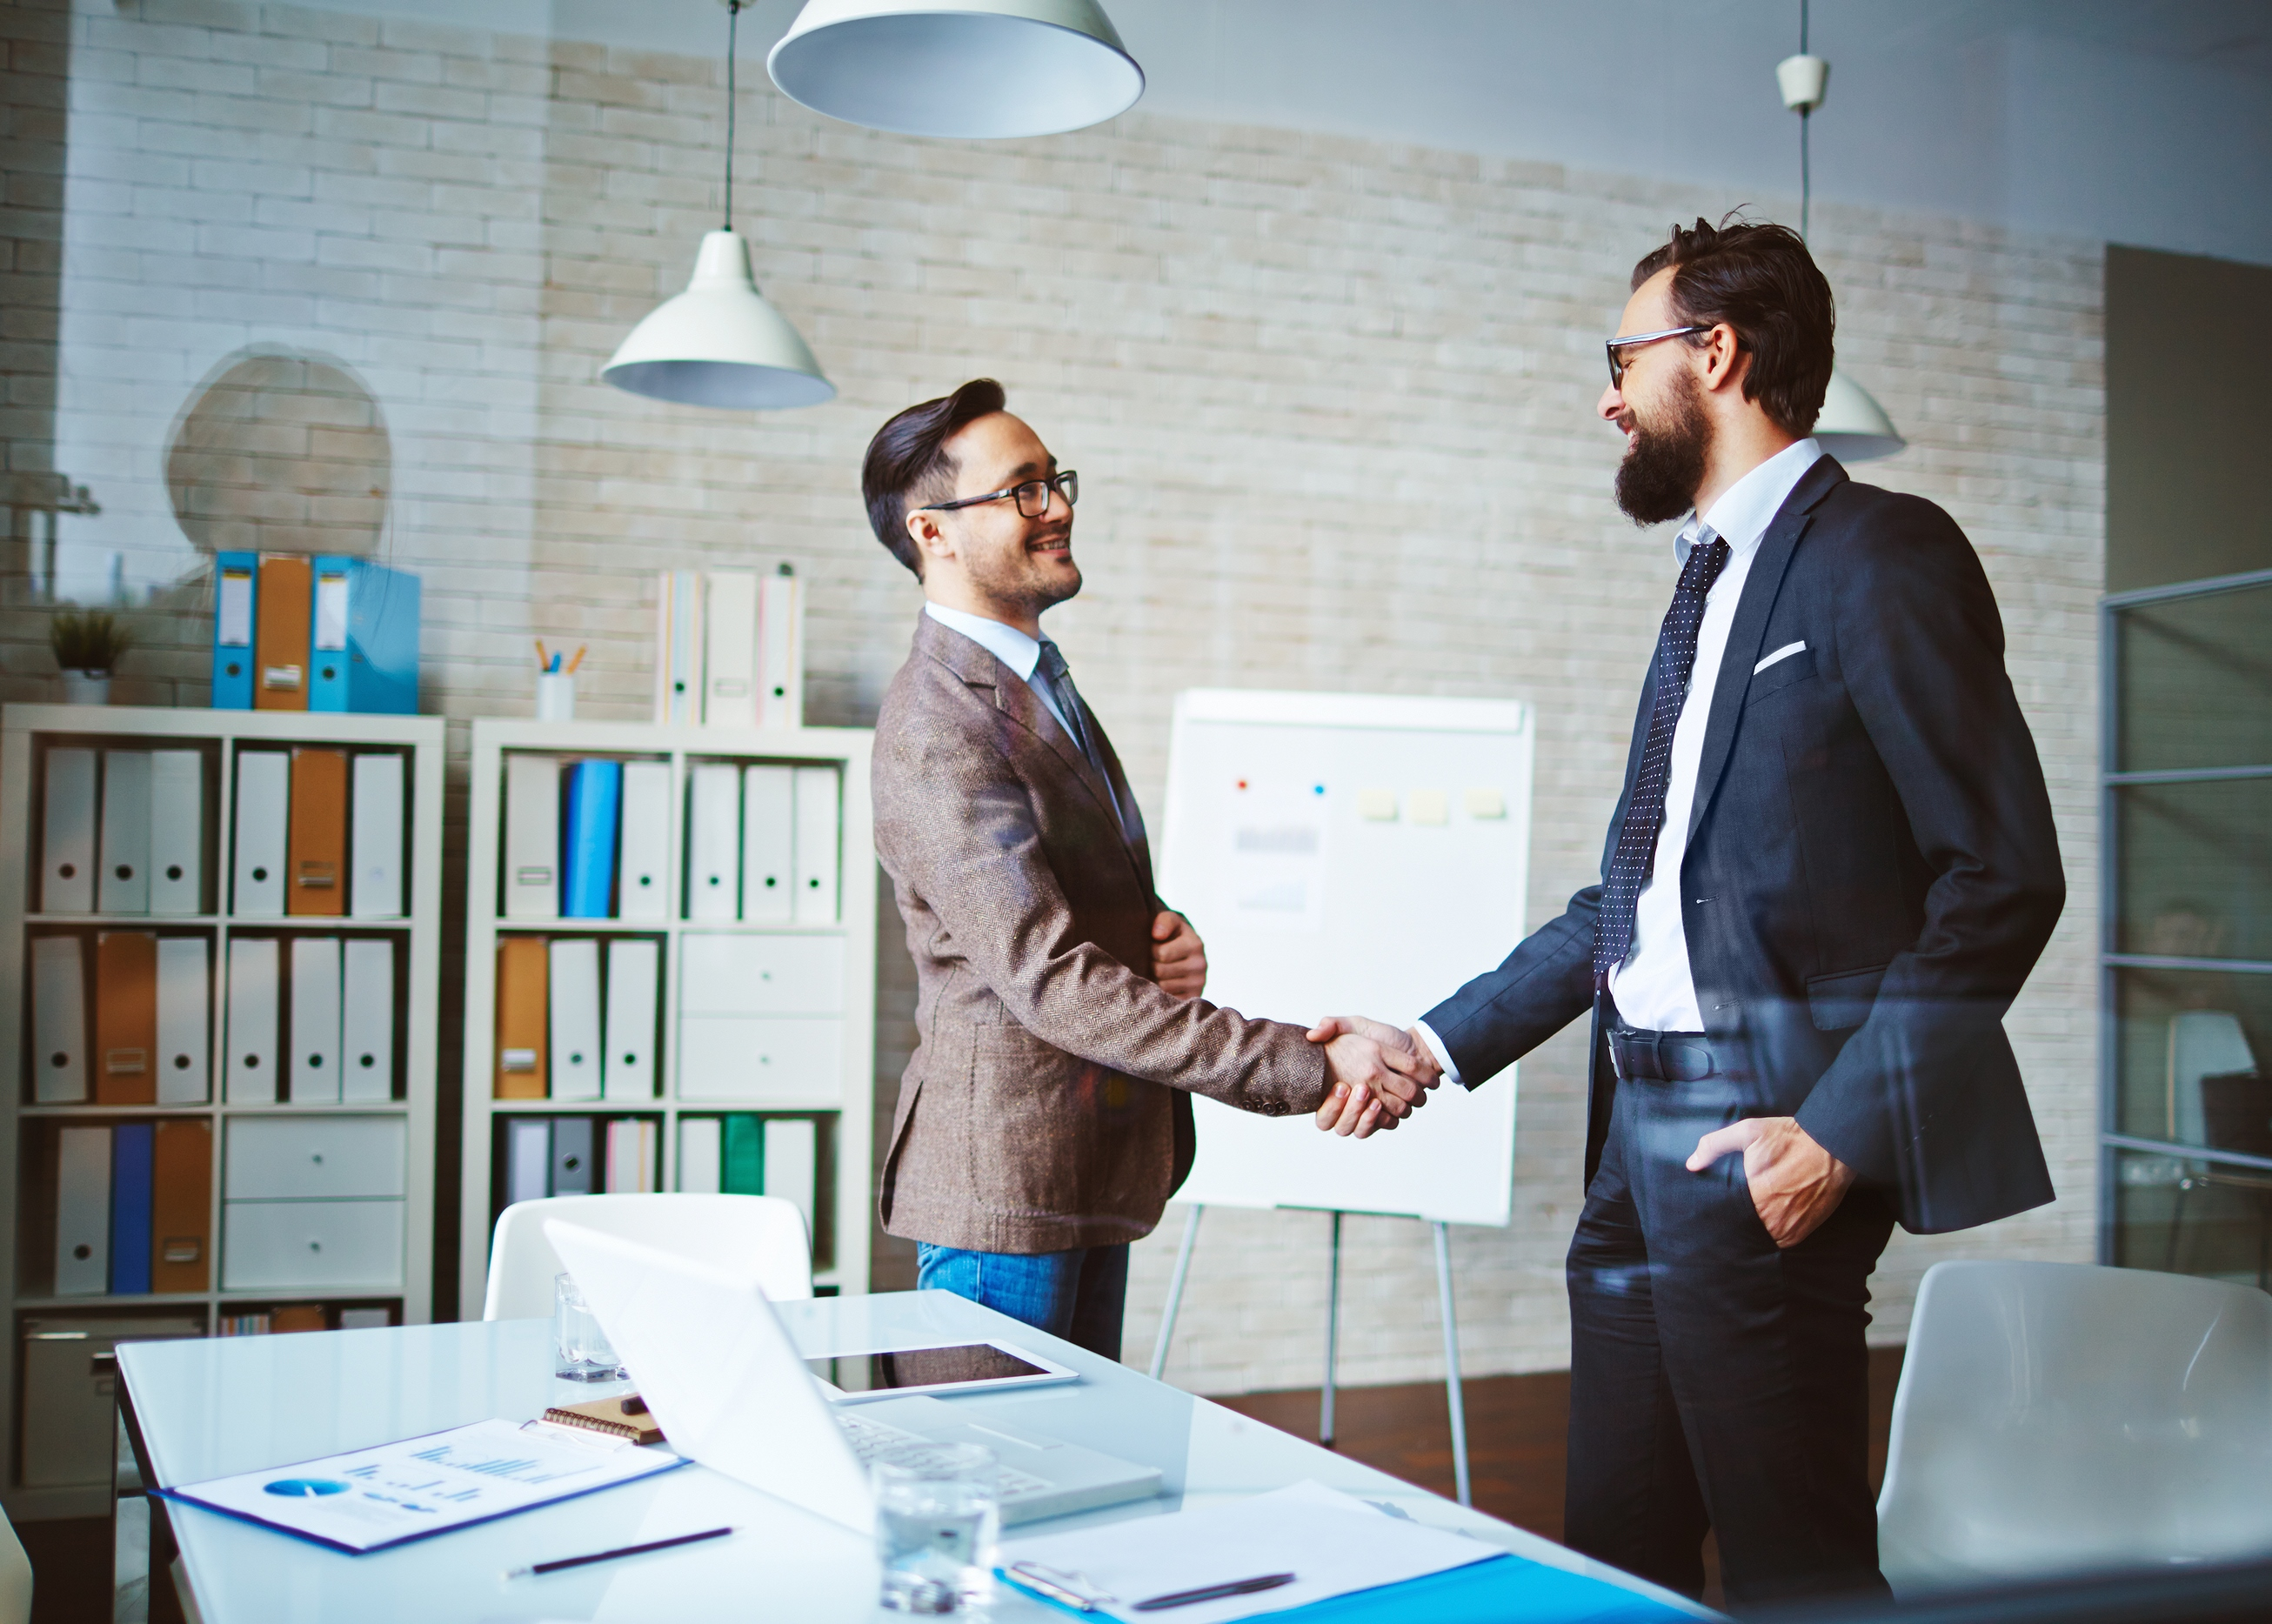 4 advantages for accountants to collaborate to provide value-add services